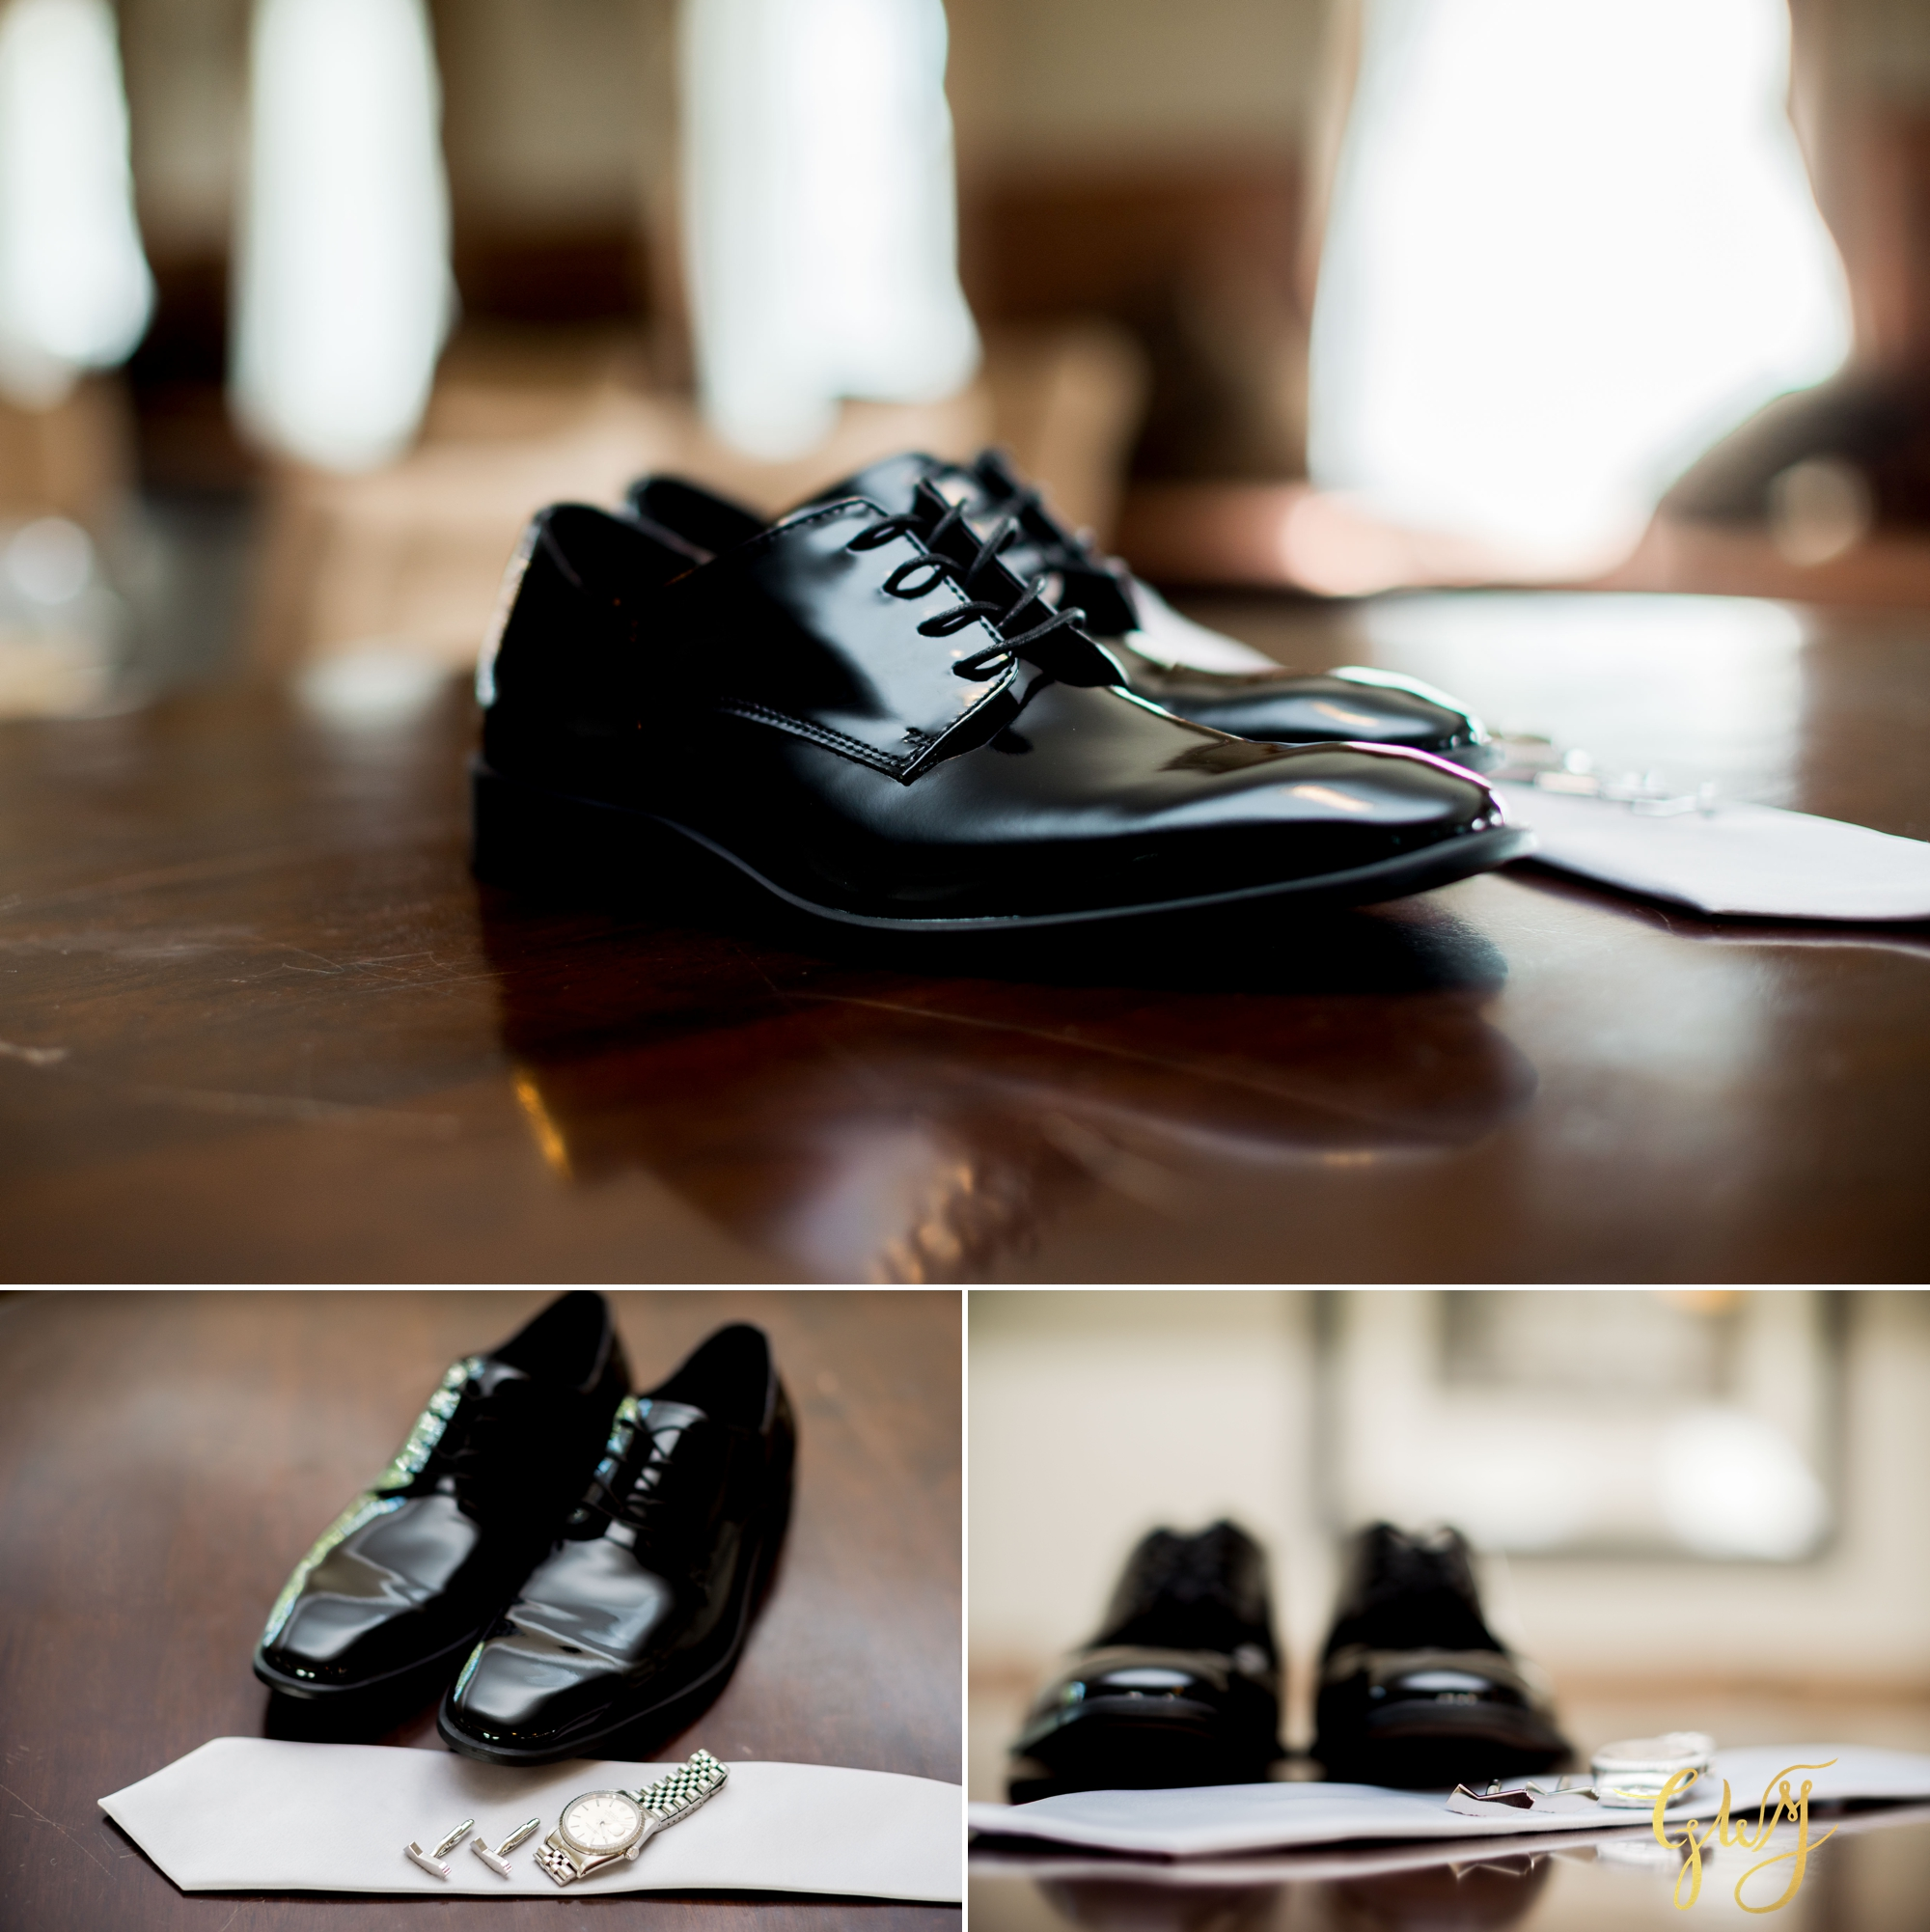 Andy + Caselyn's White House Event Center Orange County Spring Wedding by Glass Woods Media 12.jpg